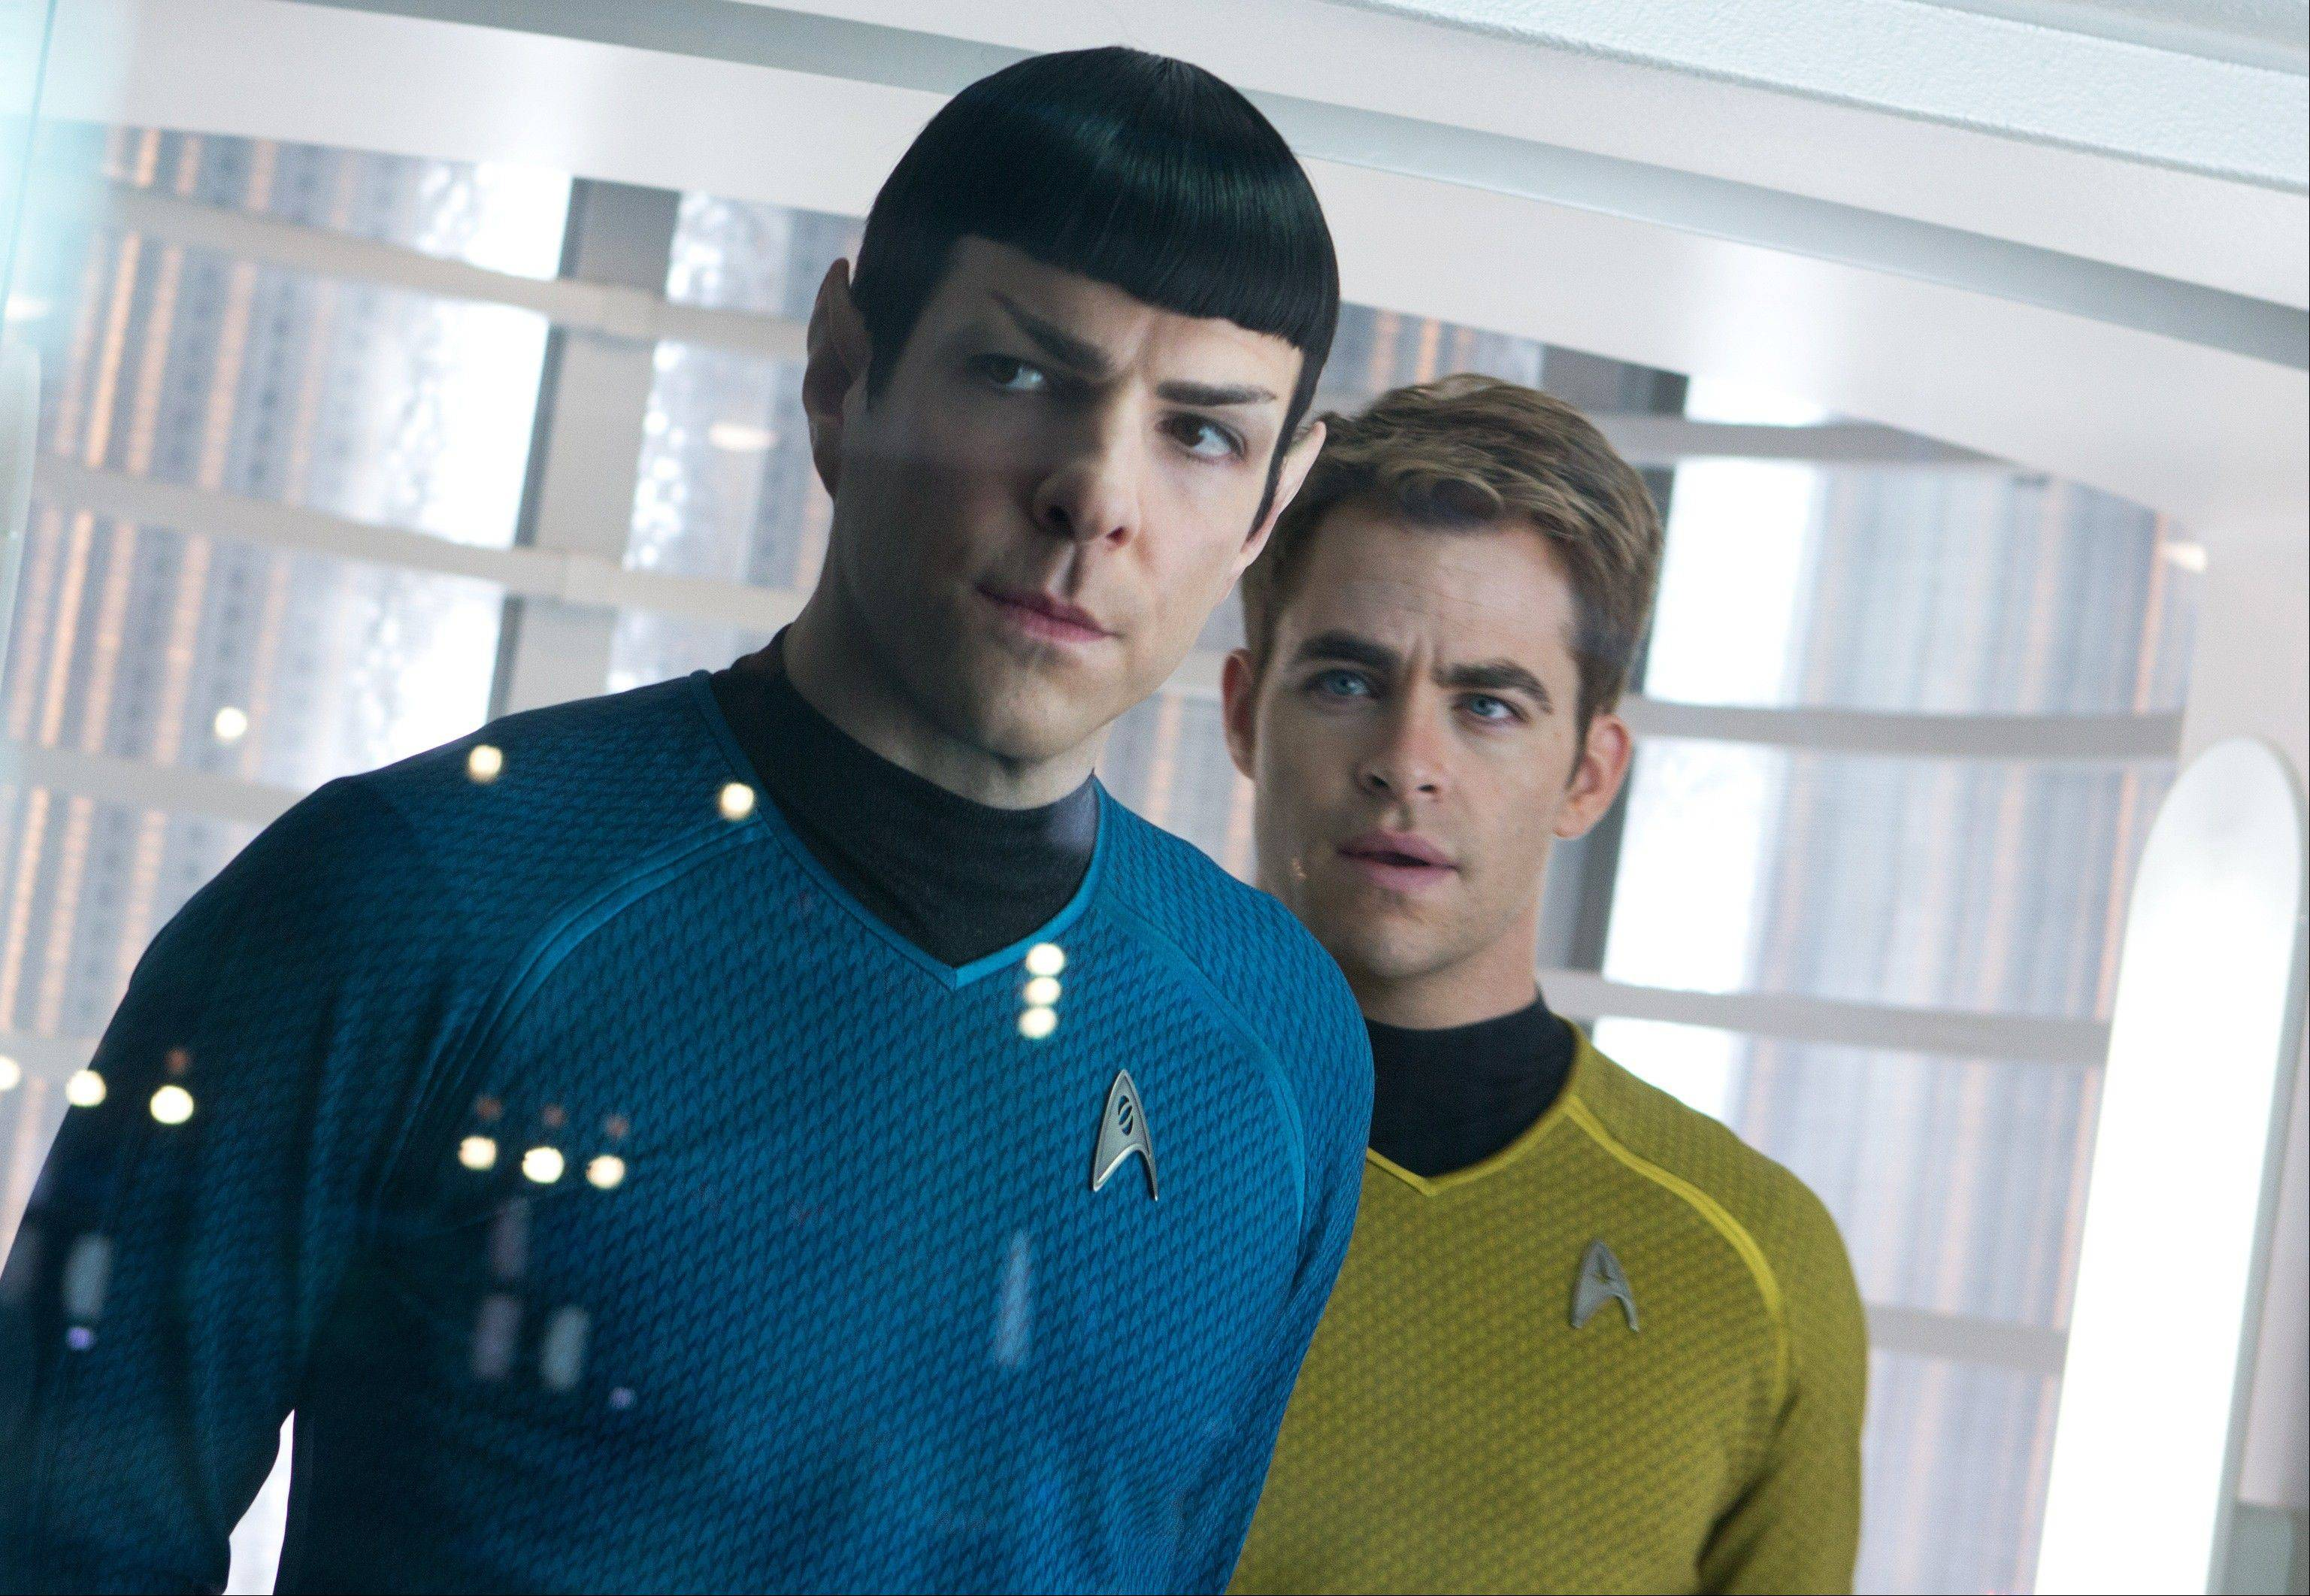 Zachary Quinto, left, as Spock and Chris Pine as Kirk appear in a scene in the movie, �Star Trek Into Darkness� that opens this week.